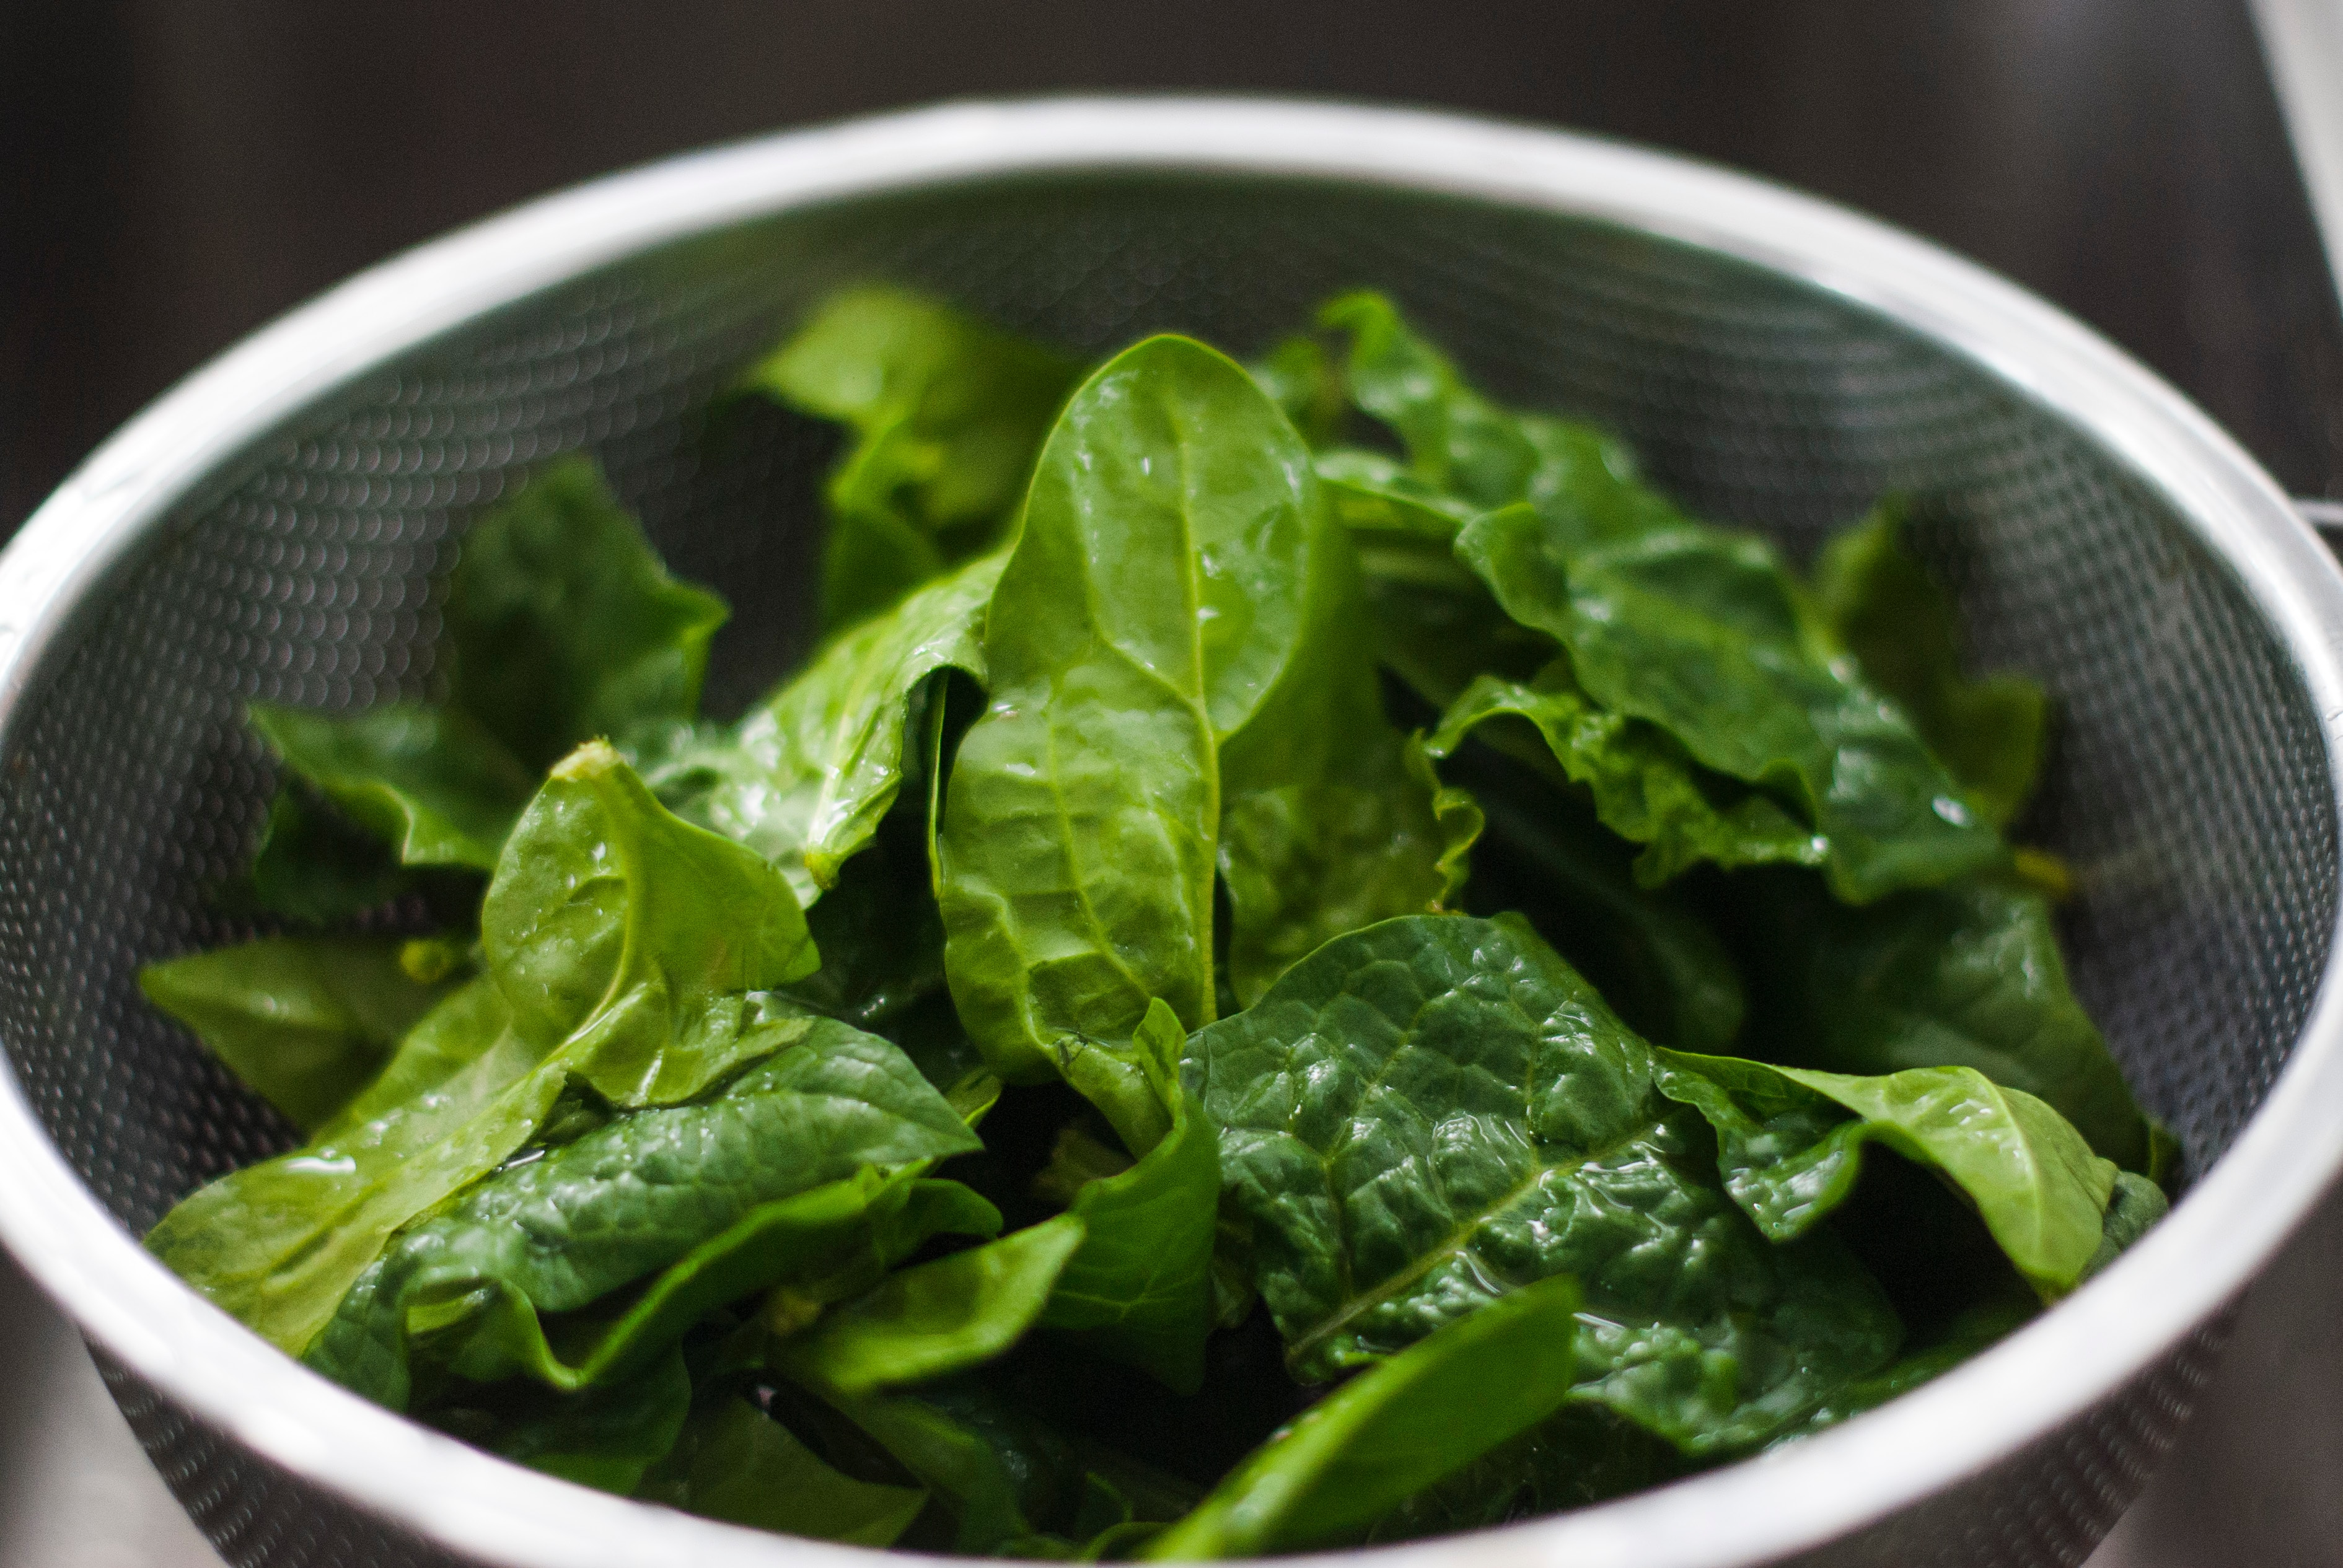 A metal strainer filled with spinach leaves